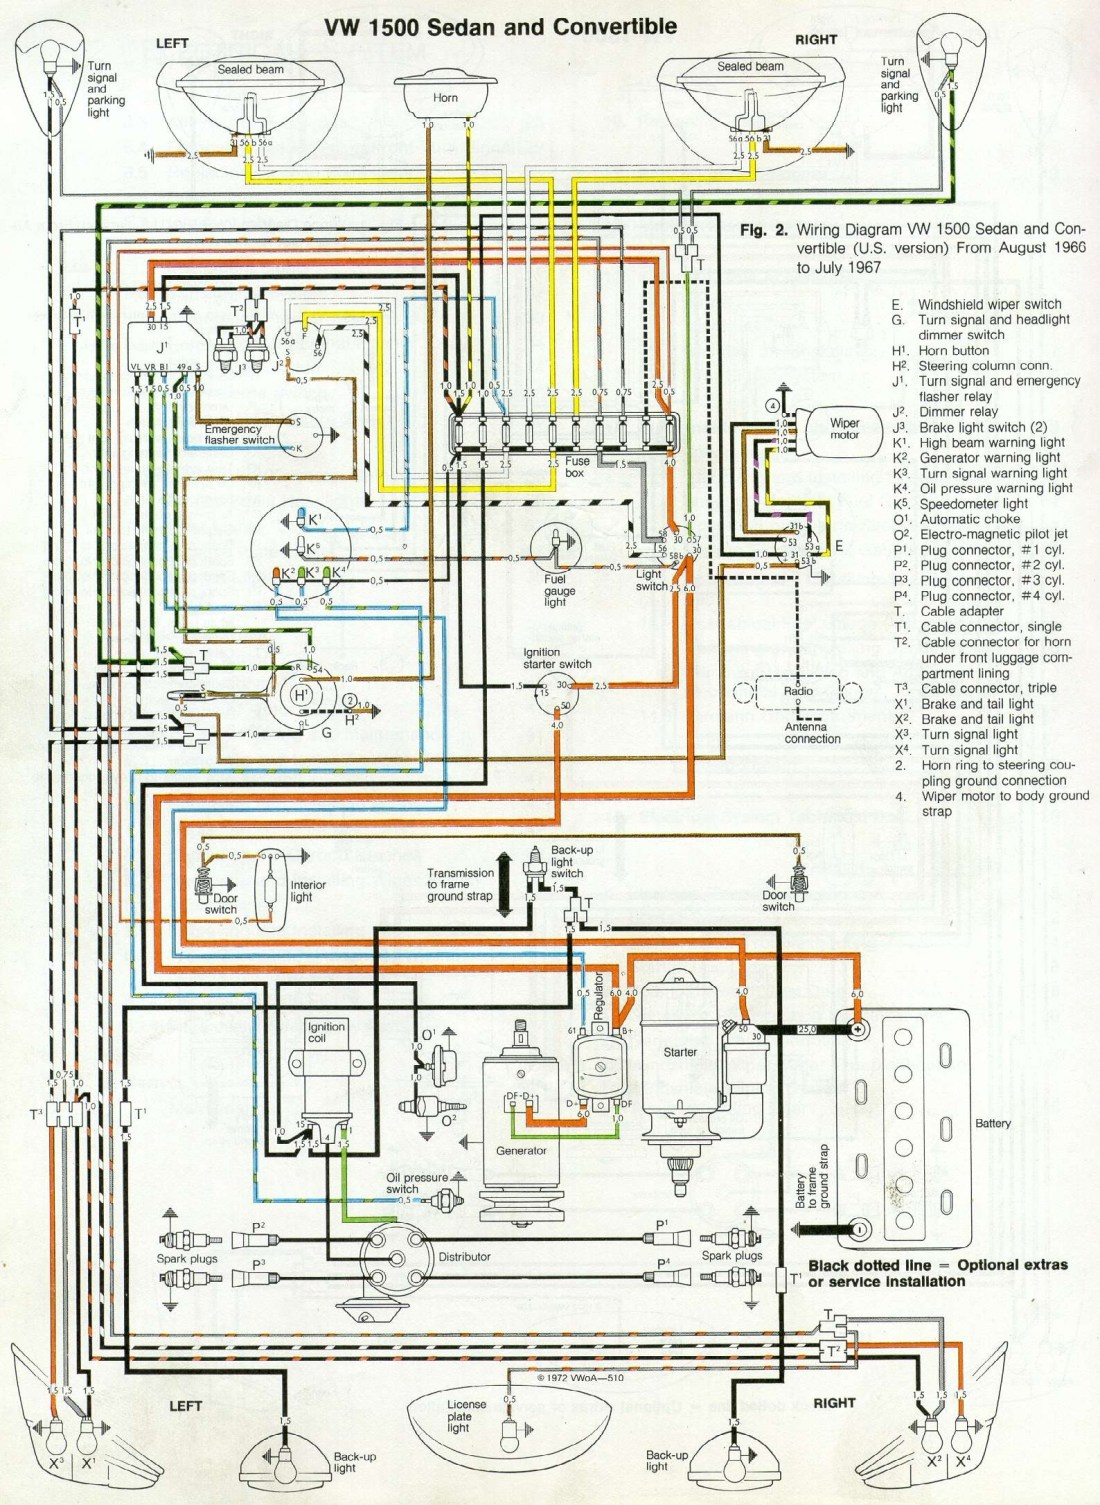 wiring diagram for 1967 vw beetle